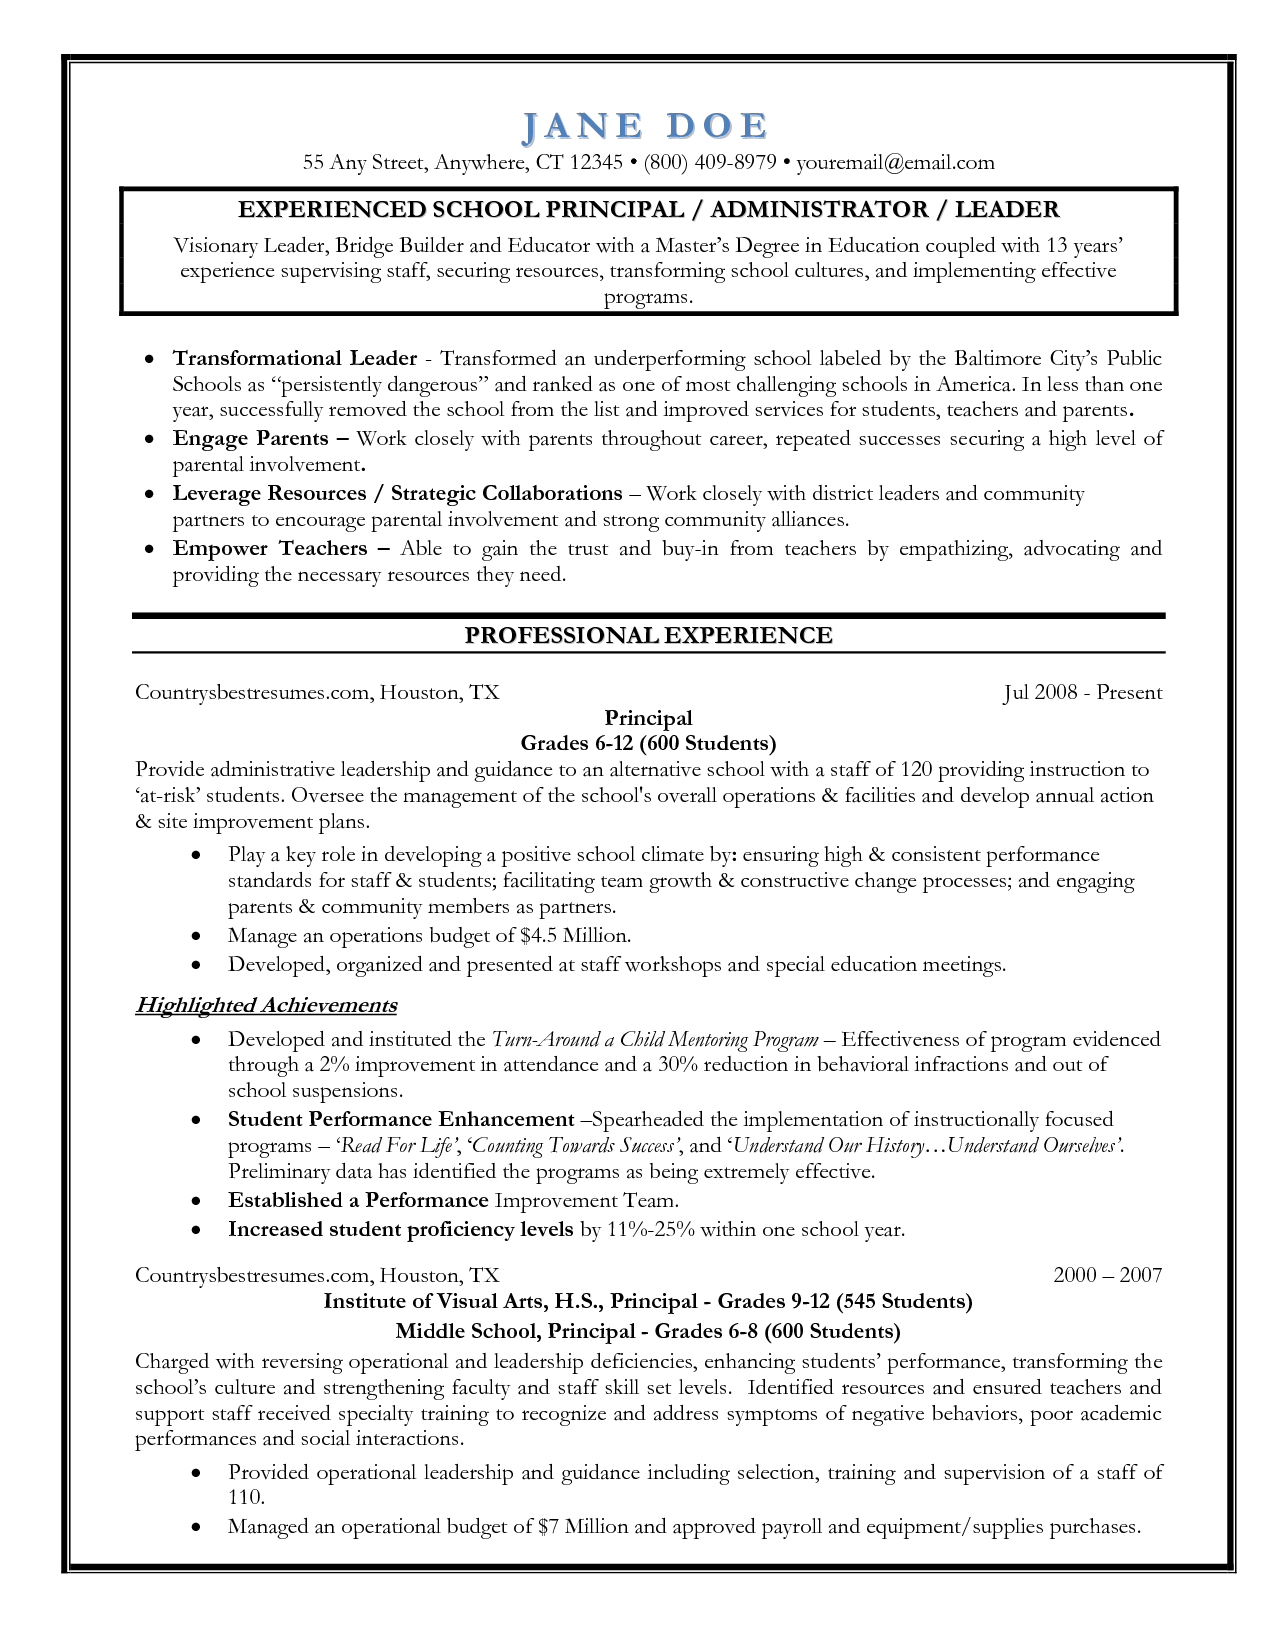 Summary Statement Resume Examples Entrylevel Assistant Principal Resume Templates  Senior Educator